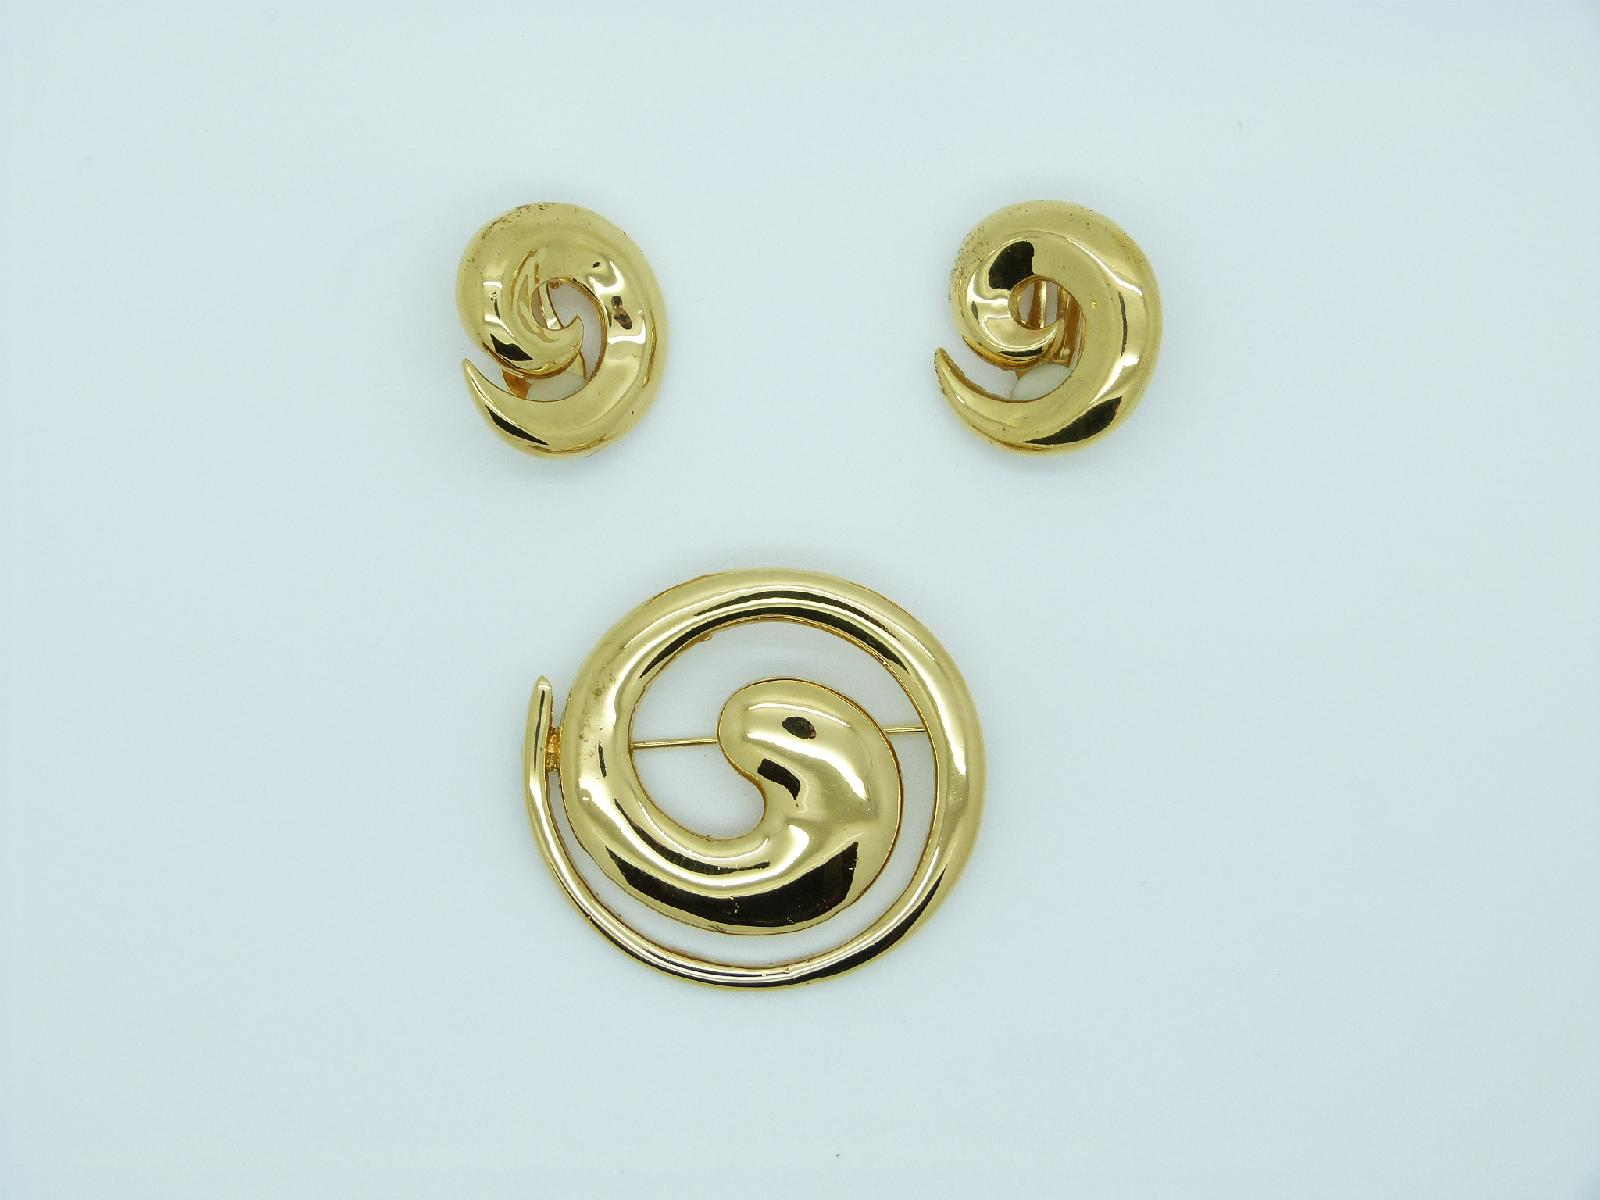 Vintage 90s Signed M&S Round Goldtone Brooch and Clip On Earrings Set